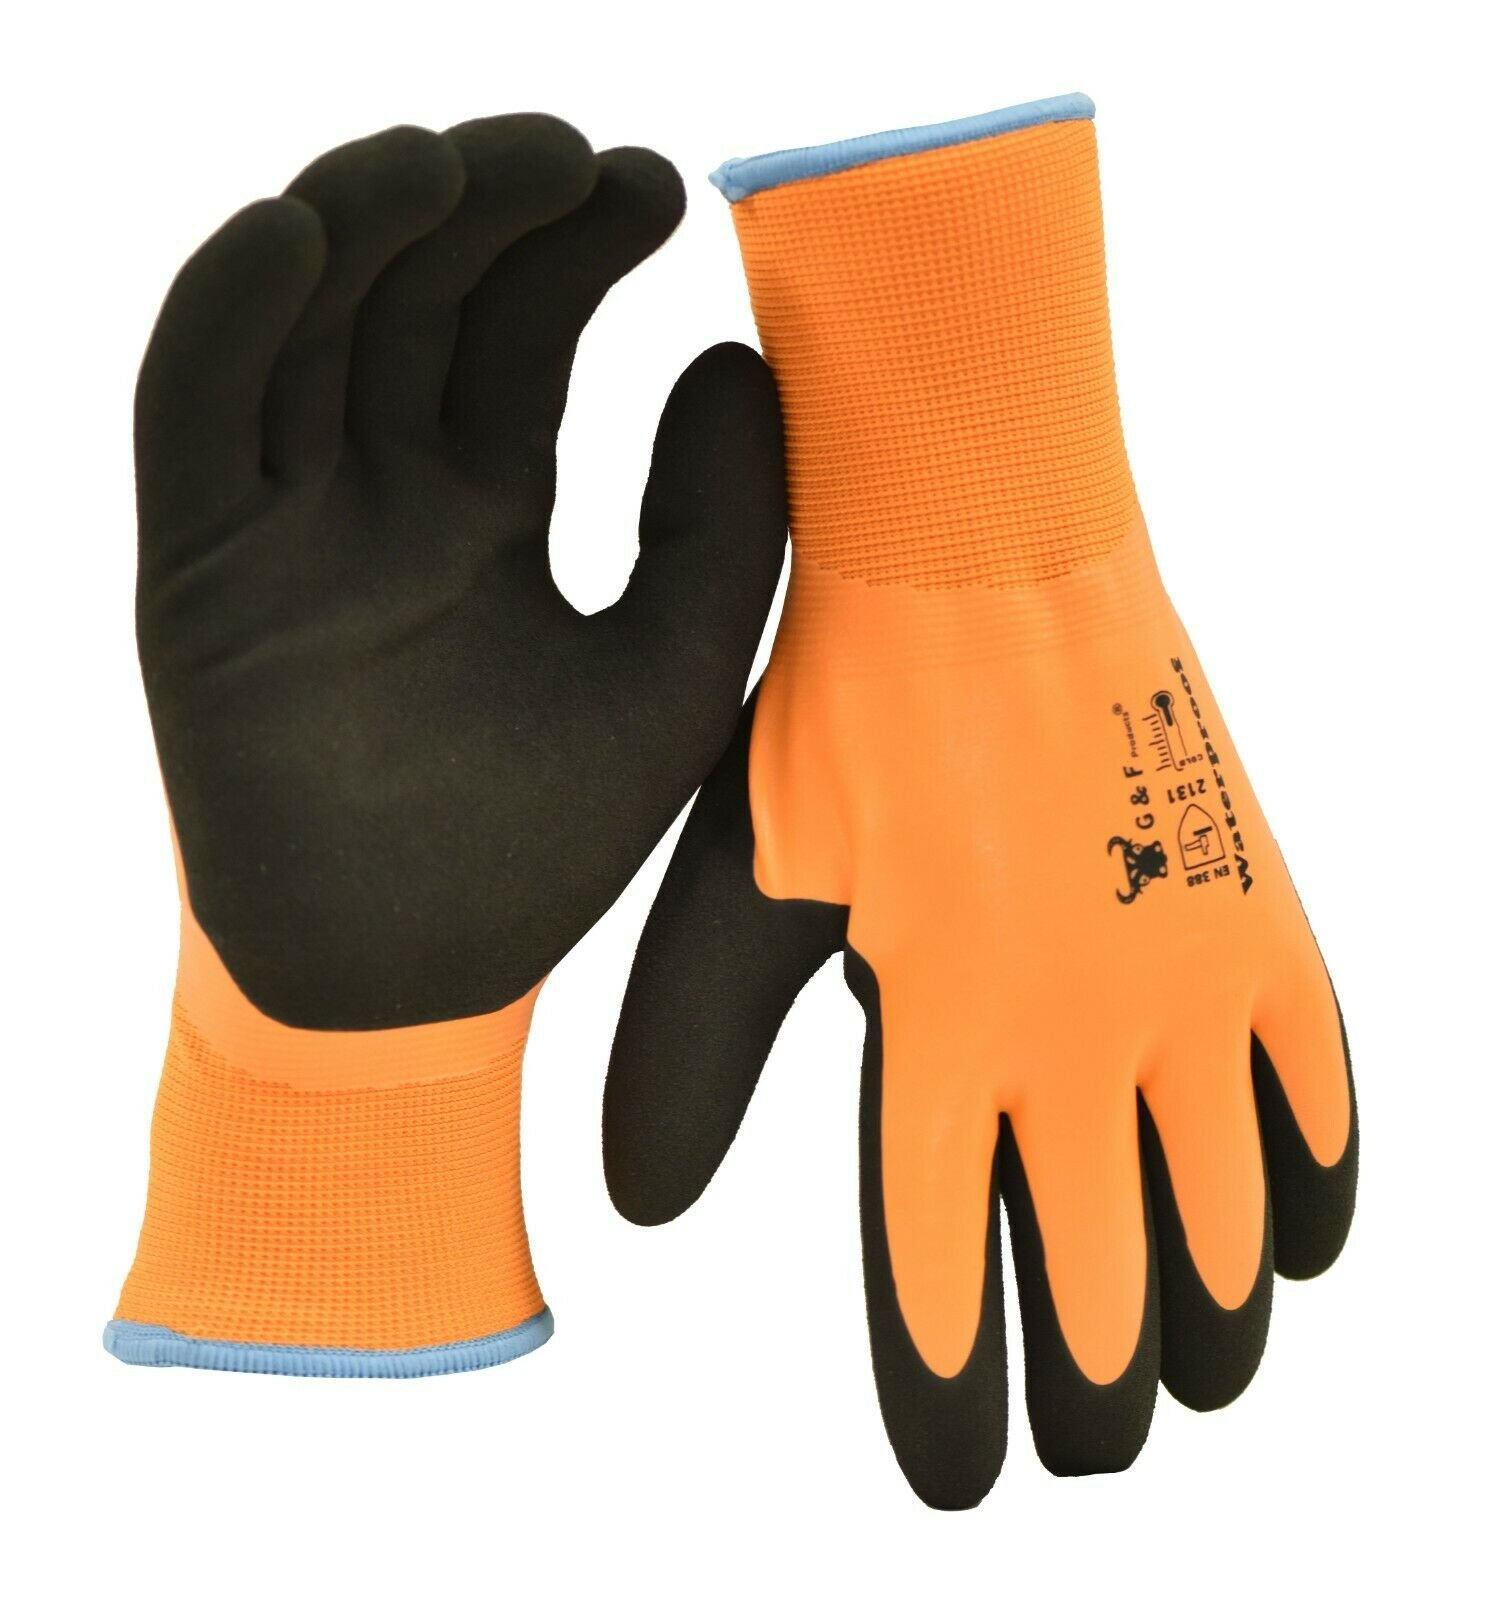 Thermal Waterproof Winter Work Gloves Latex Double Coated Insulated Nylon Gloves